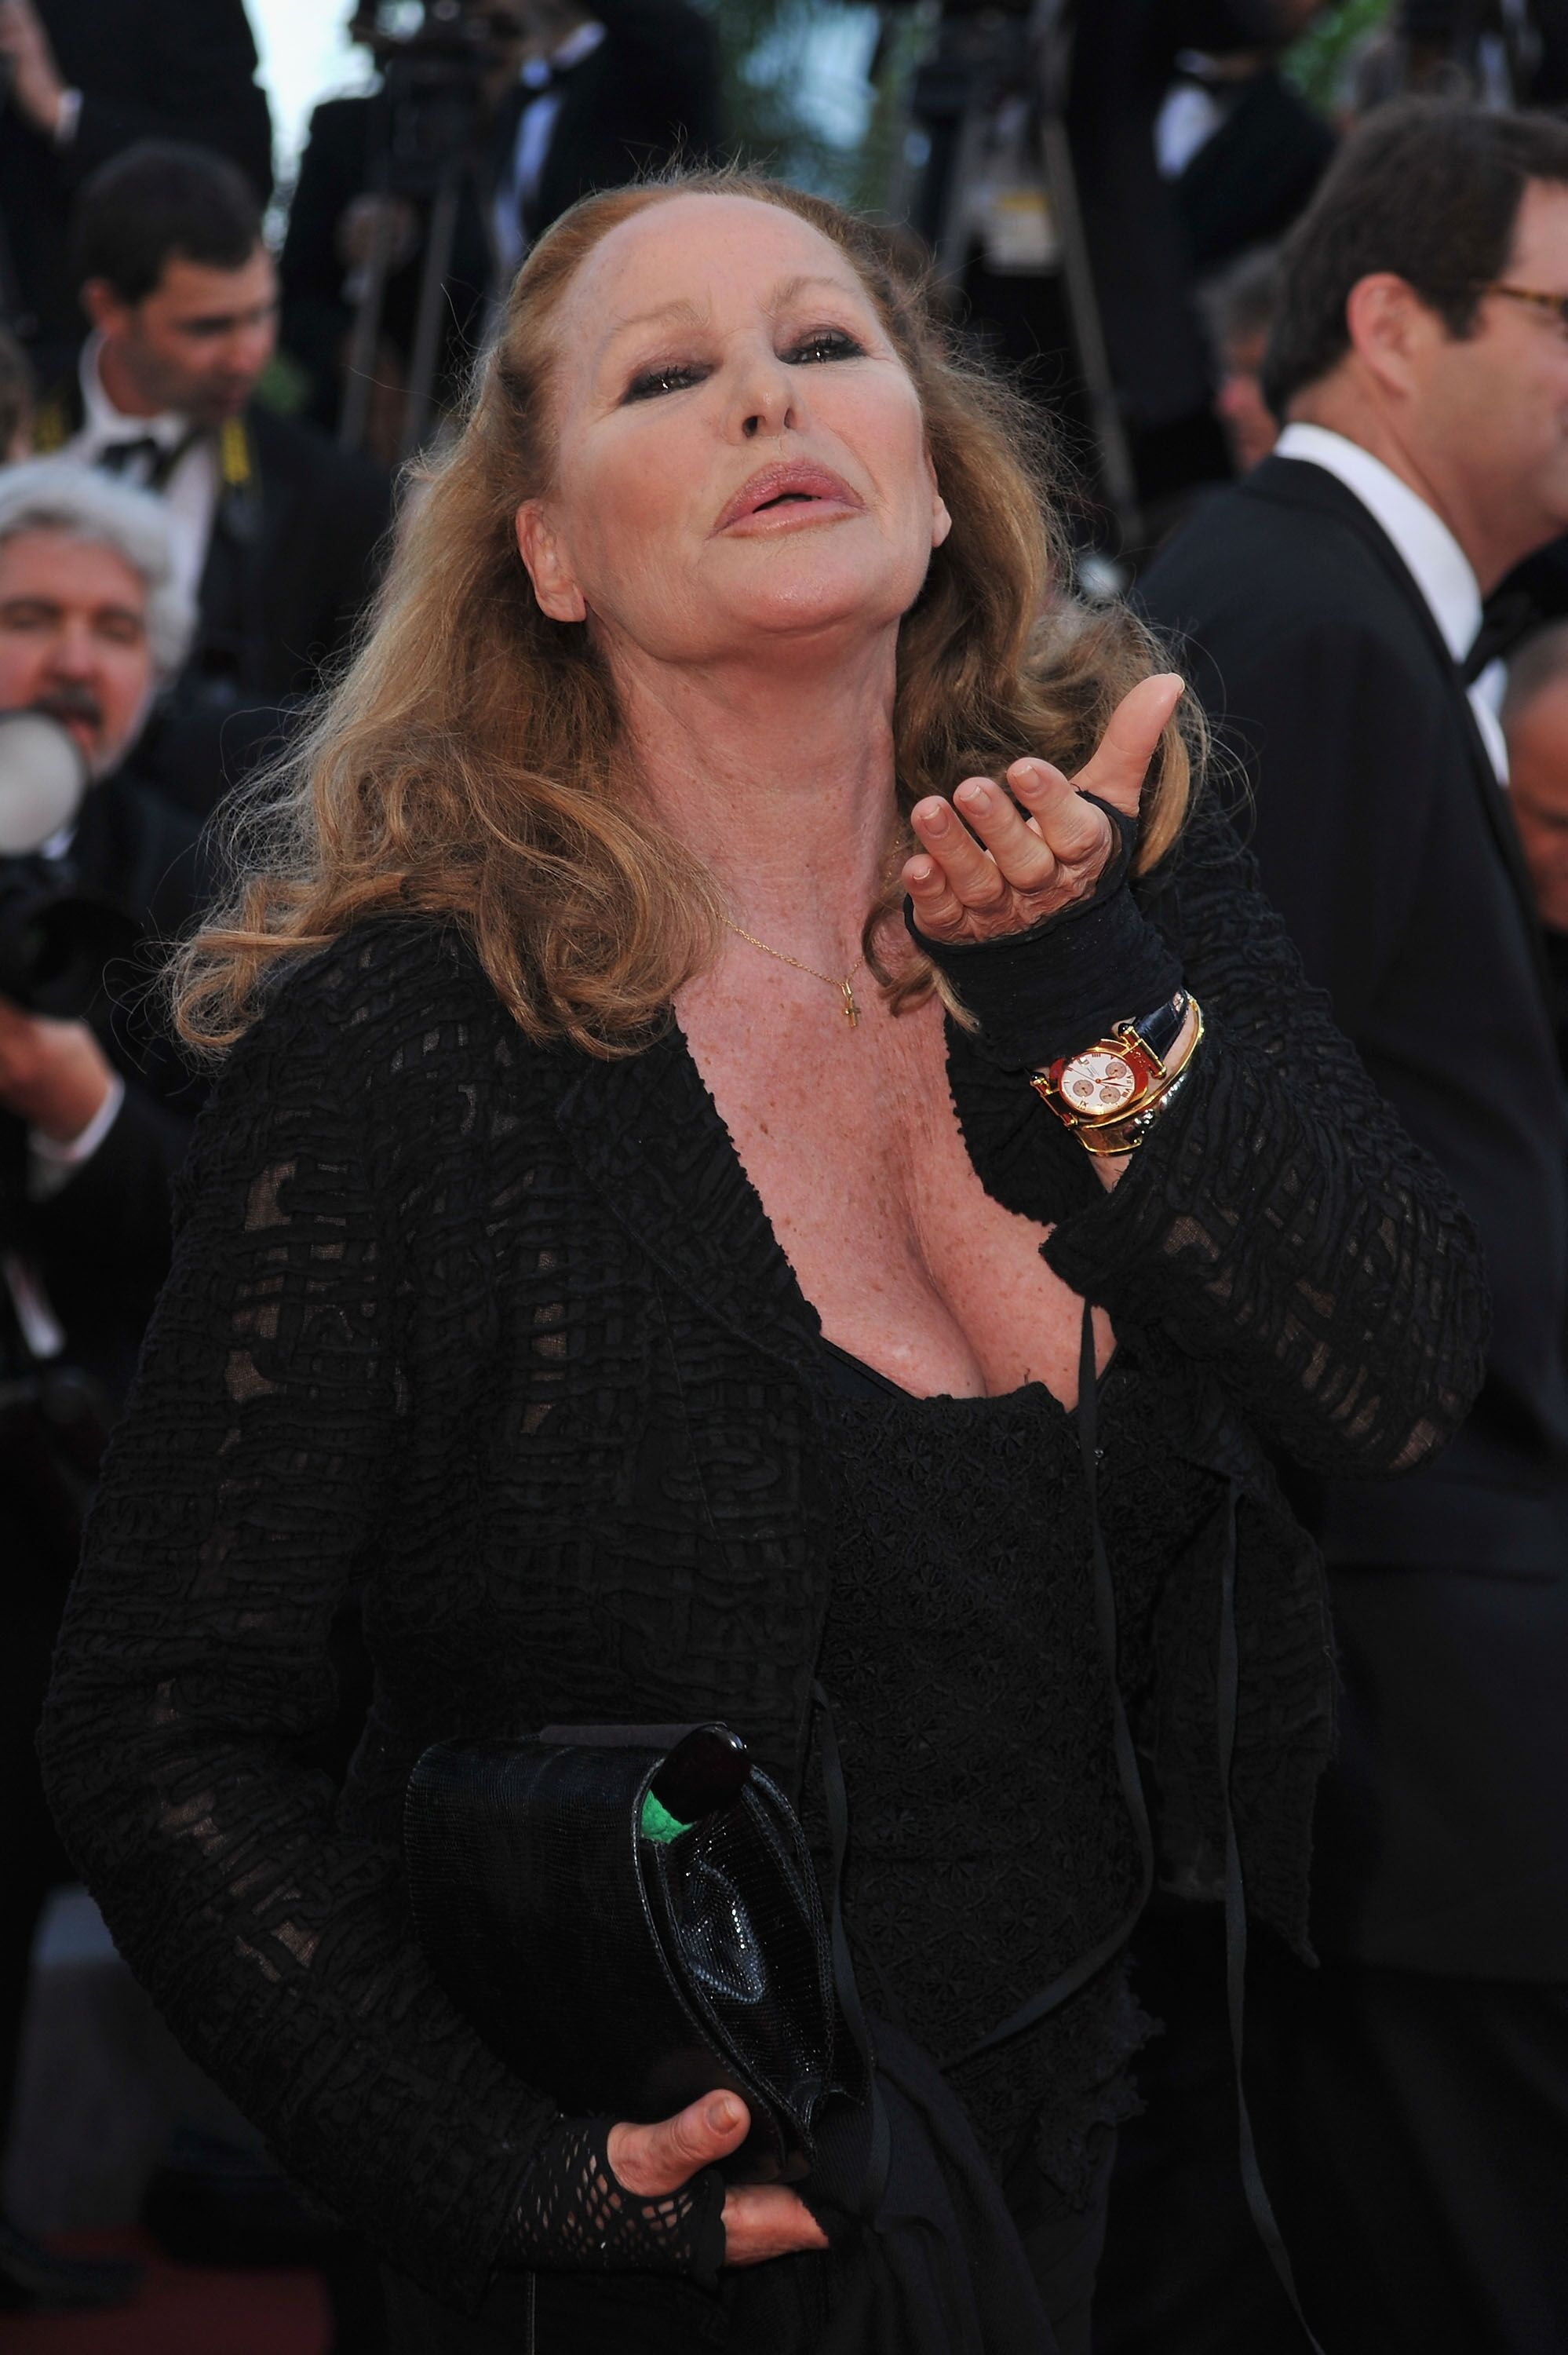 """Ursula Andress attends """"Biutiful"""" Premiere at the Palais des Festivals. 